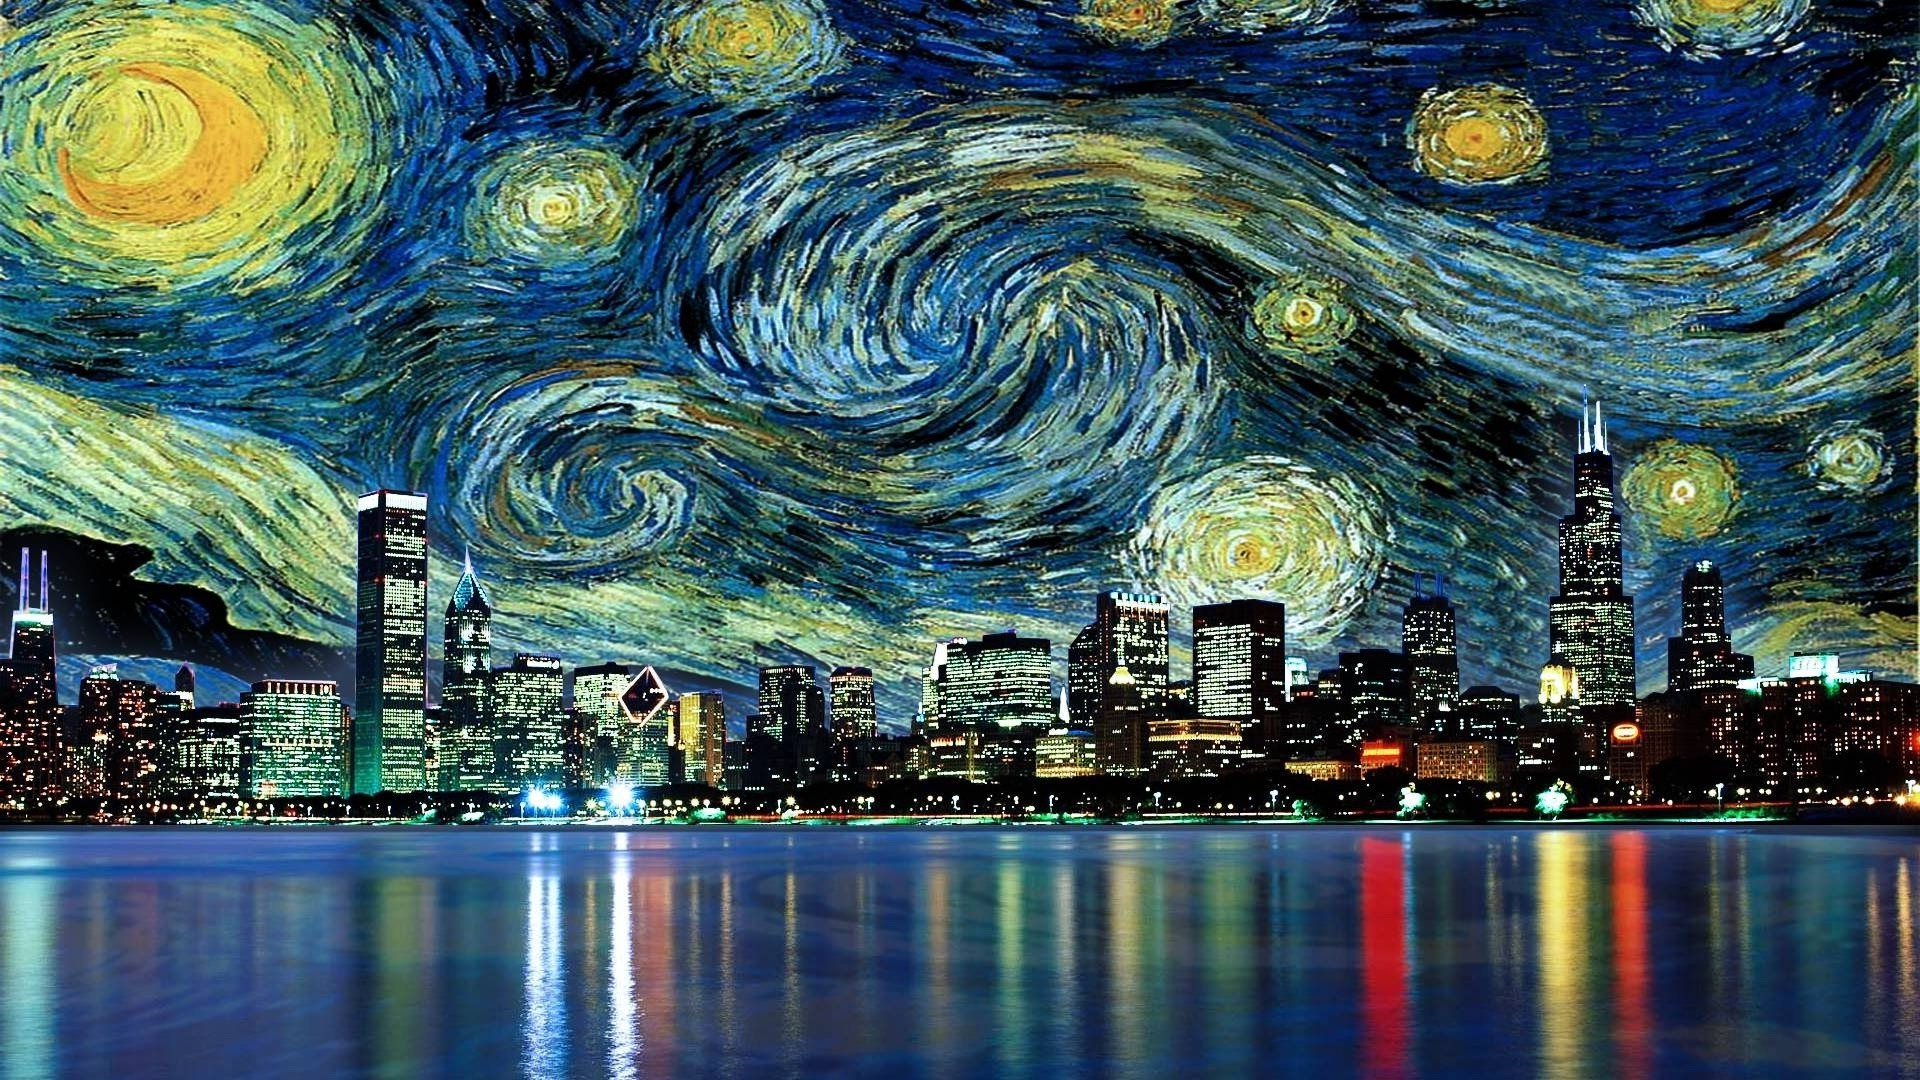 Starry Night Wallpaper (70+ images)